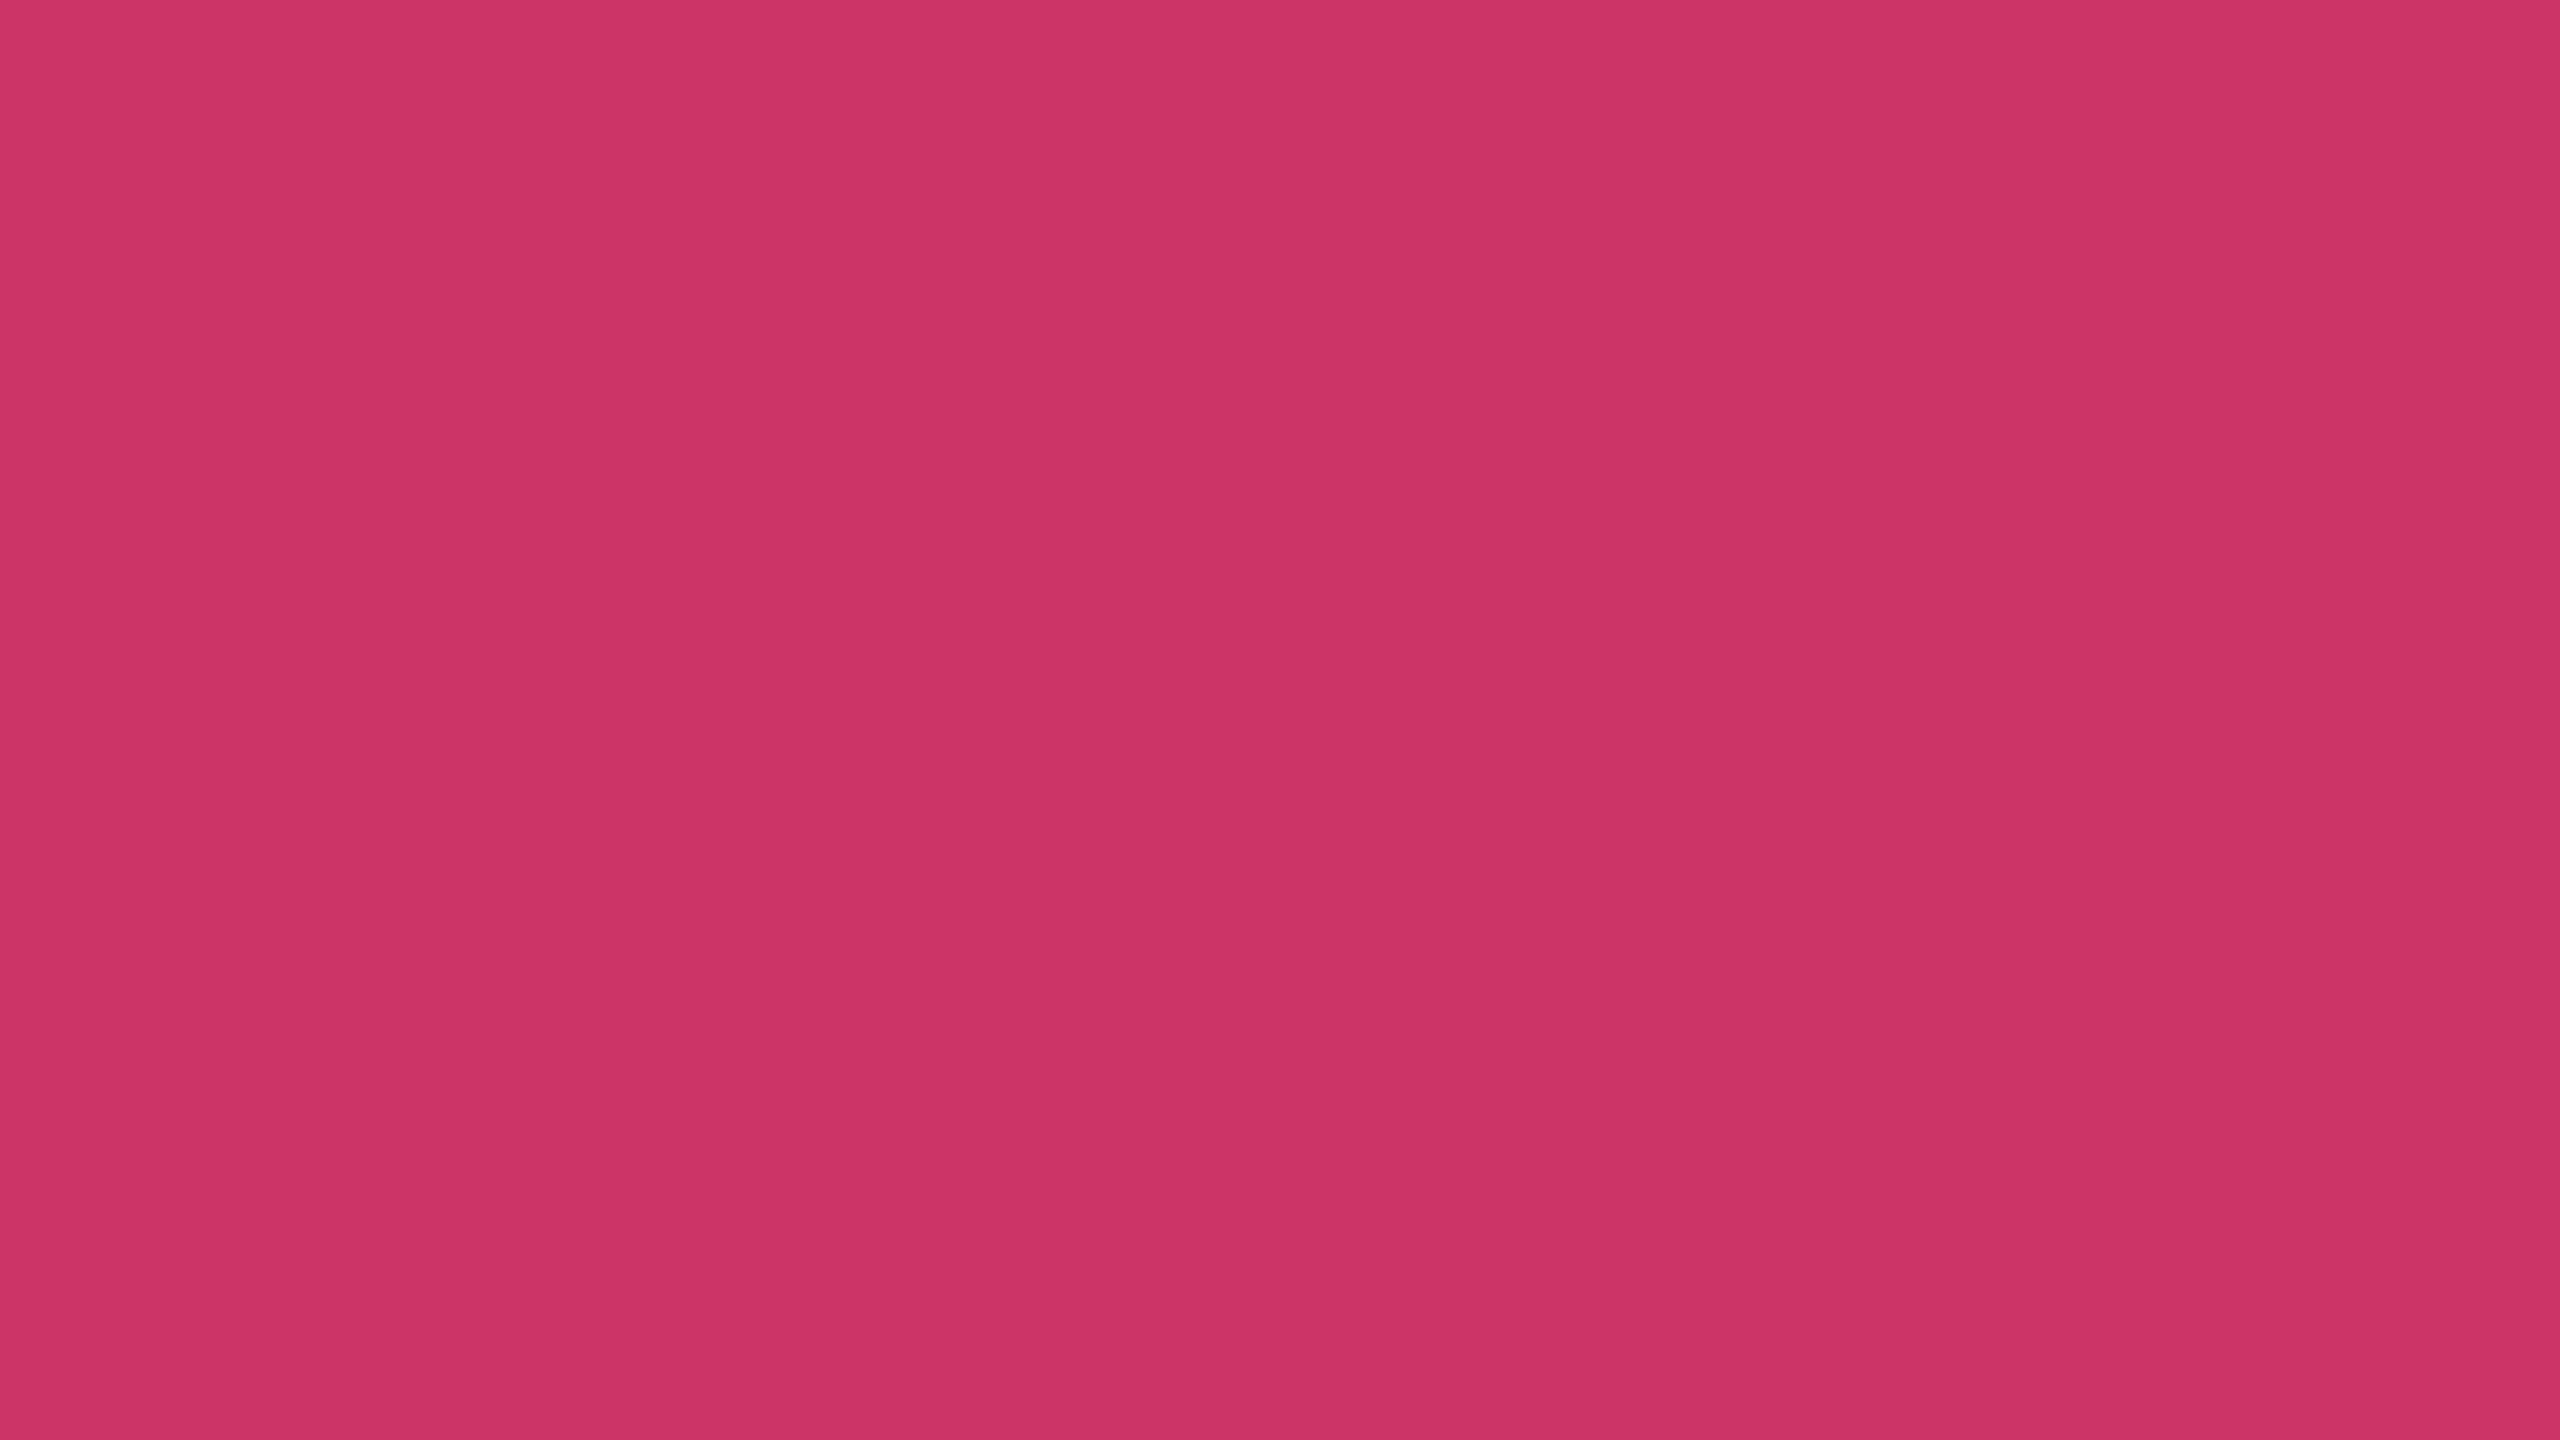 2560x1440 Steel Pink Solid Color Background